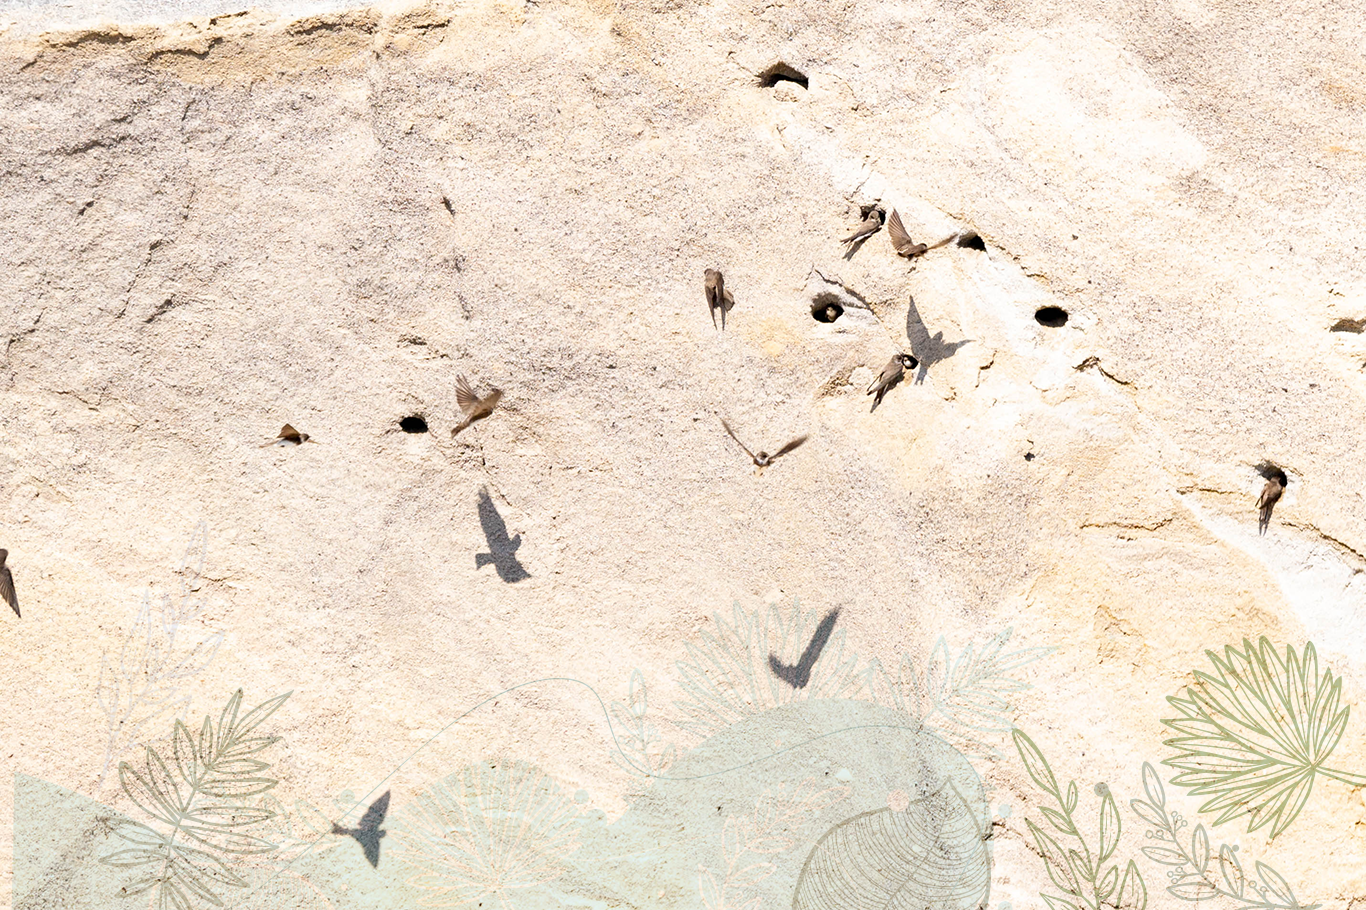 Birds nesting in sandstone